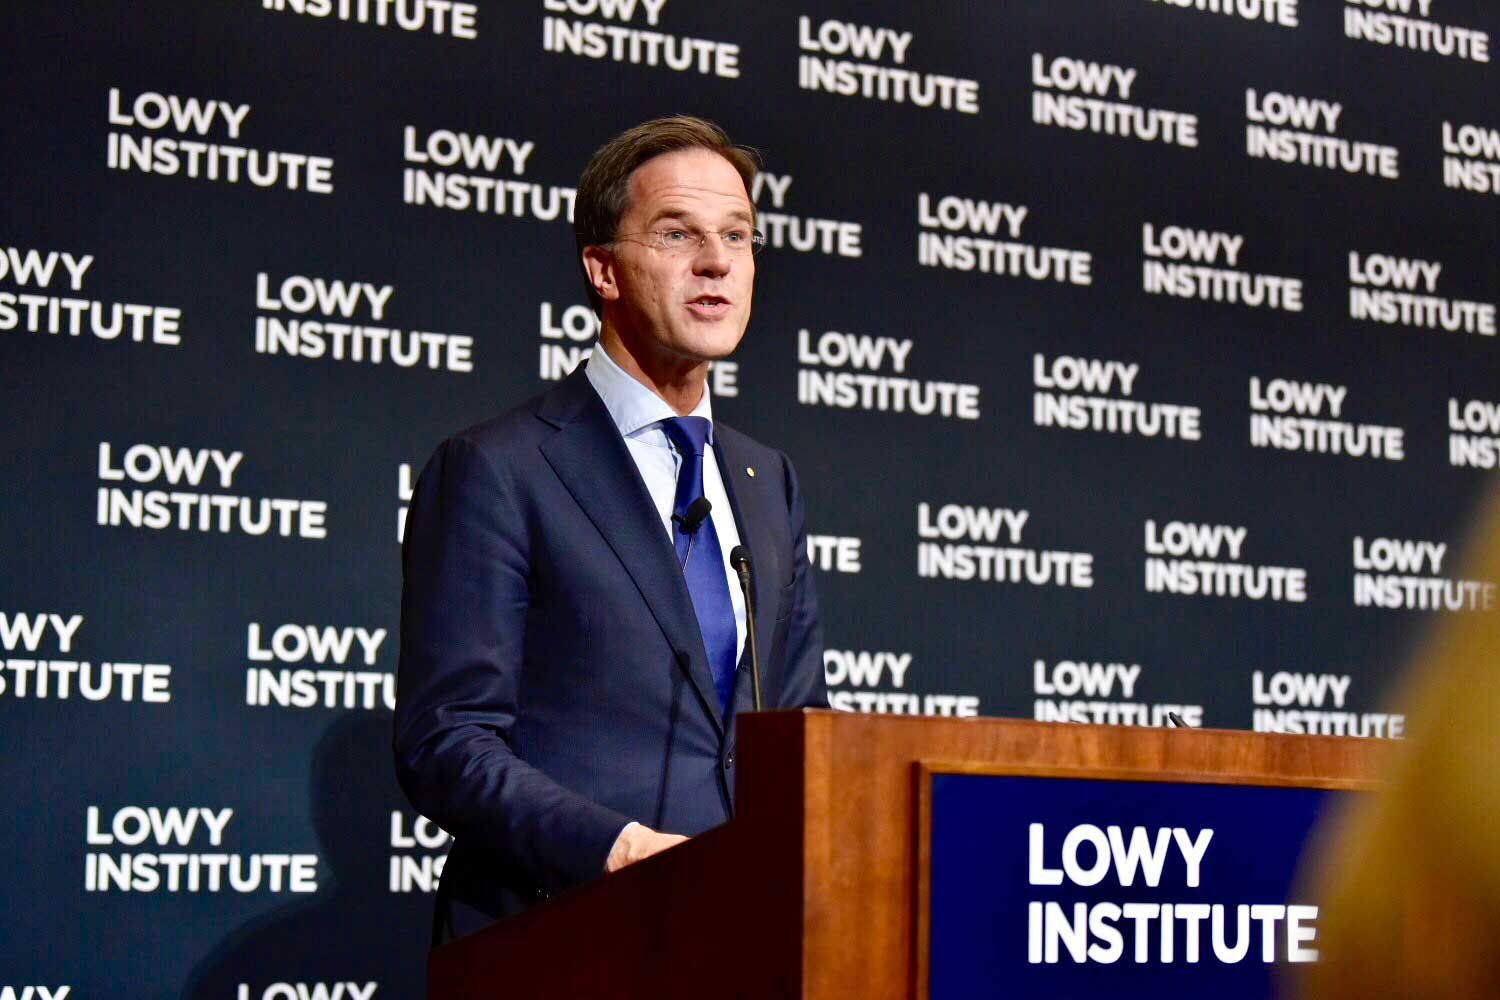 Speech by Prime Minister Mark Rutte of the Netherlands